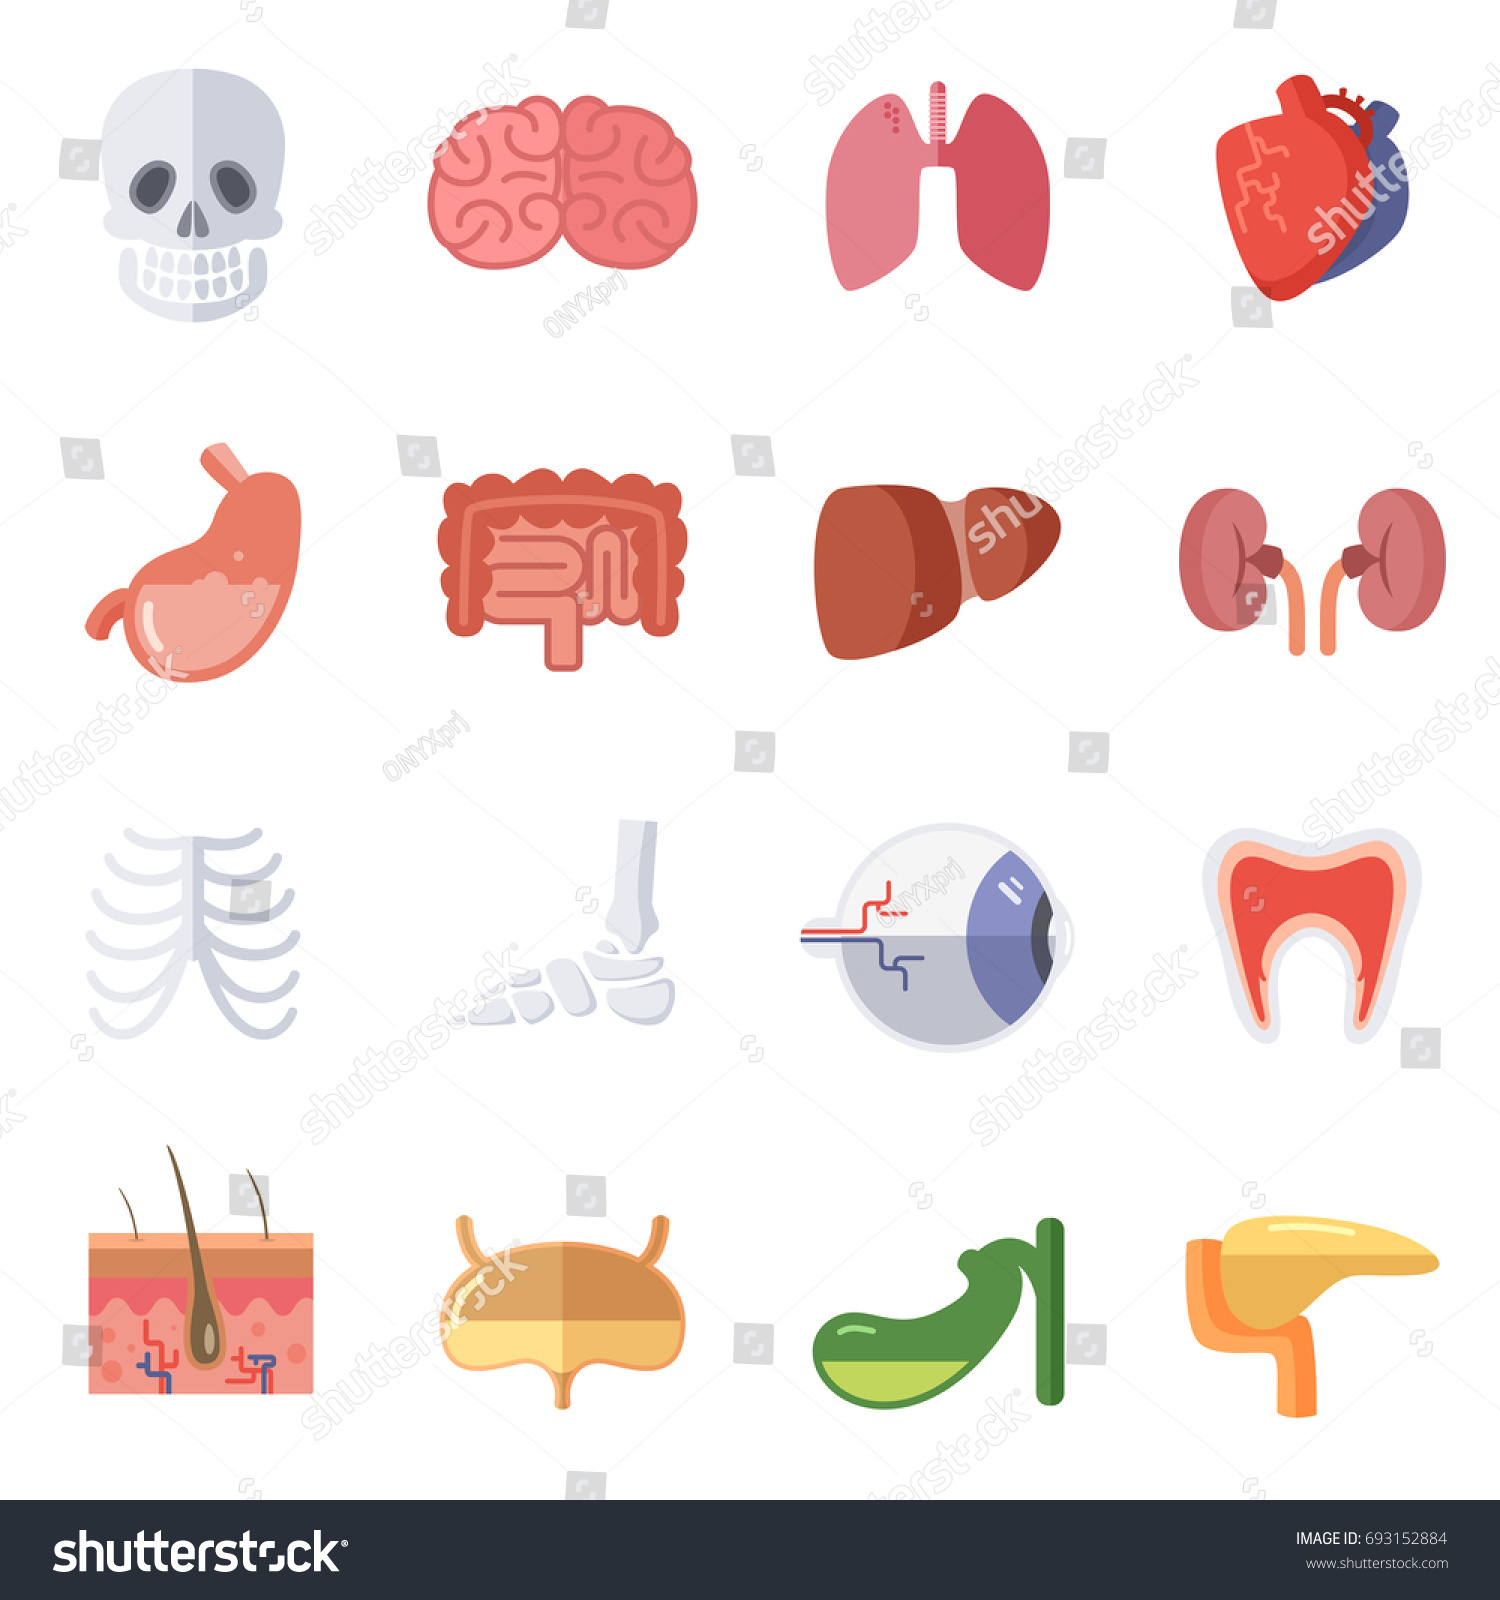 Male Female Anatomy Illustration Set Human Stock Illustration